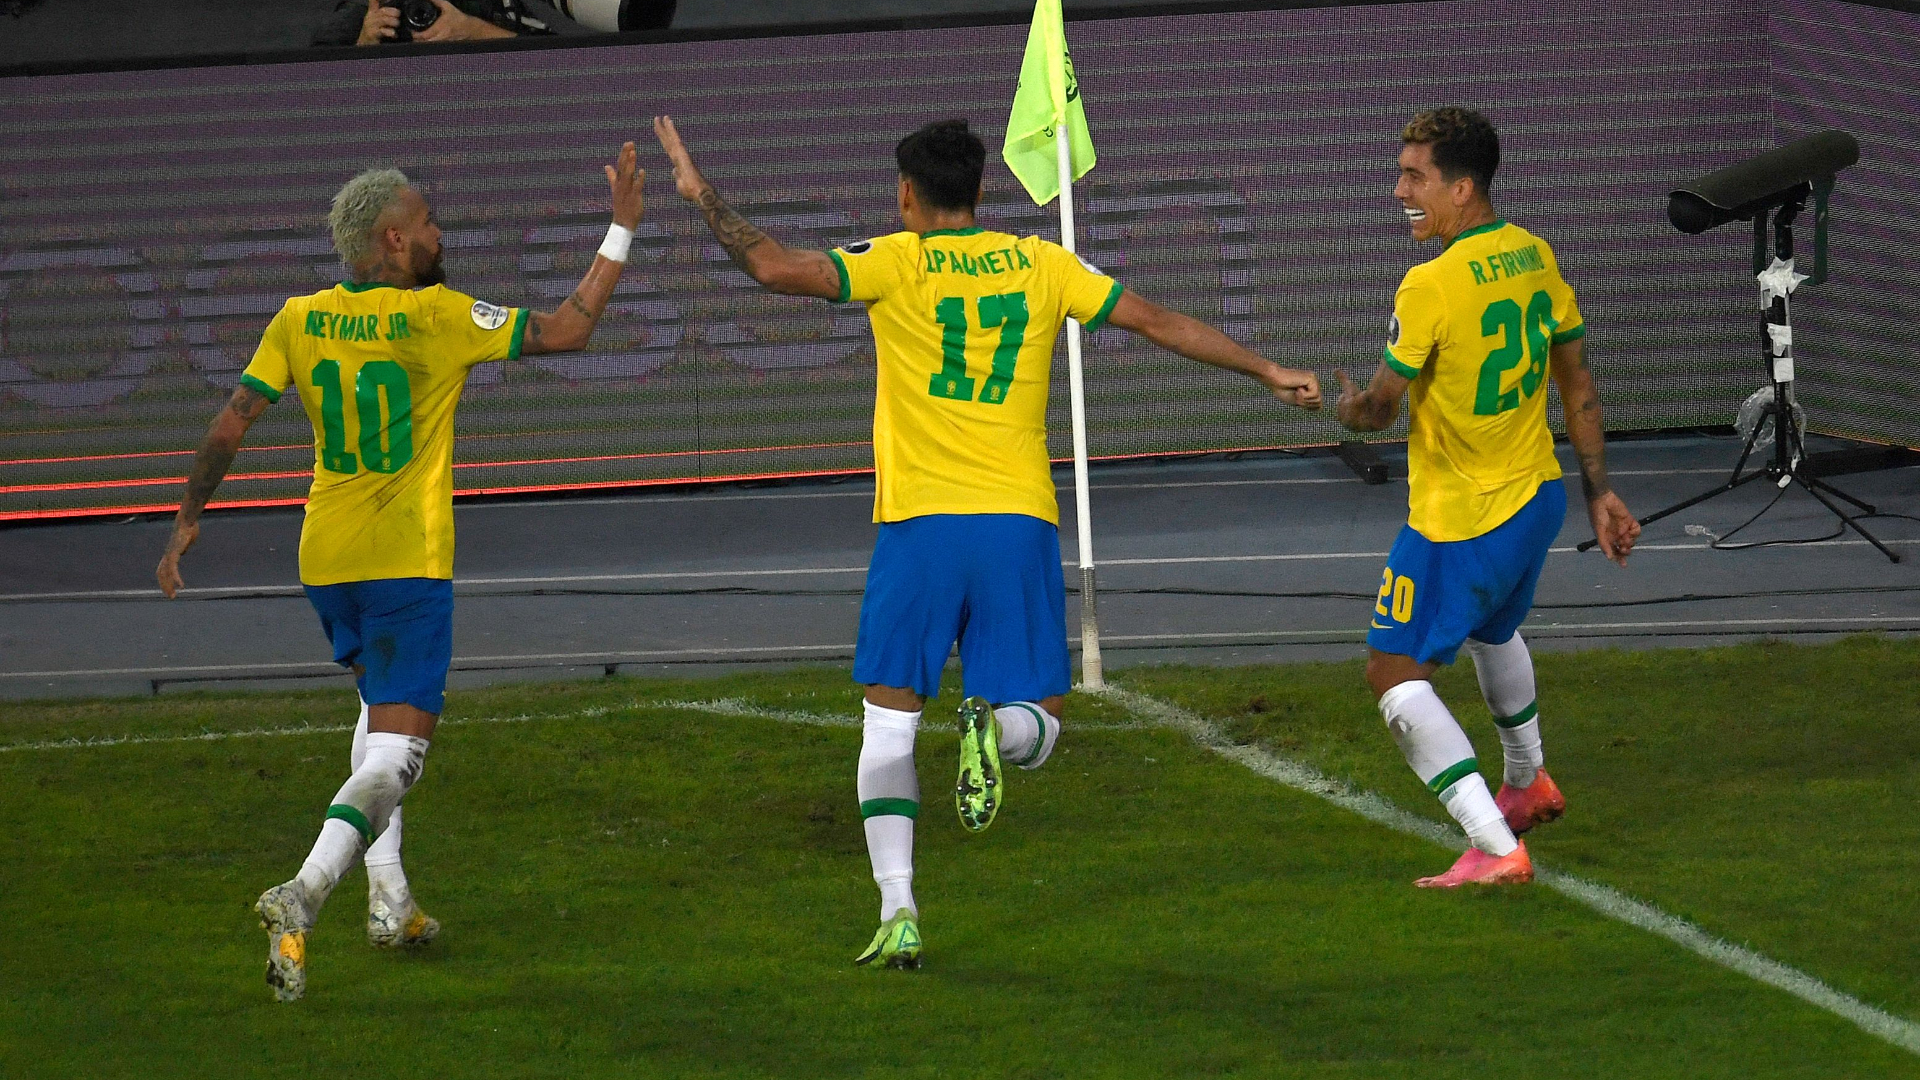 How to watch Brazil vs Chile in Copa America 2021 Quarterfinals from India?